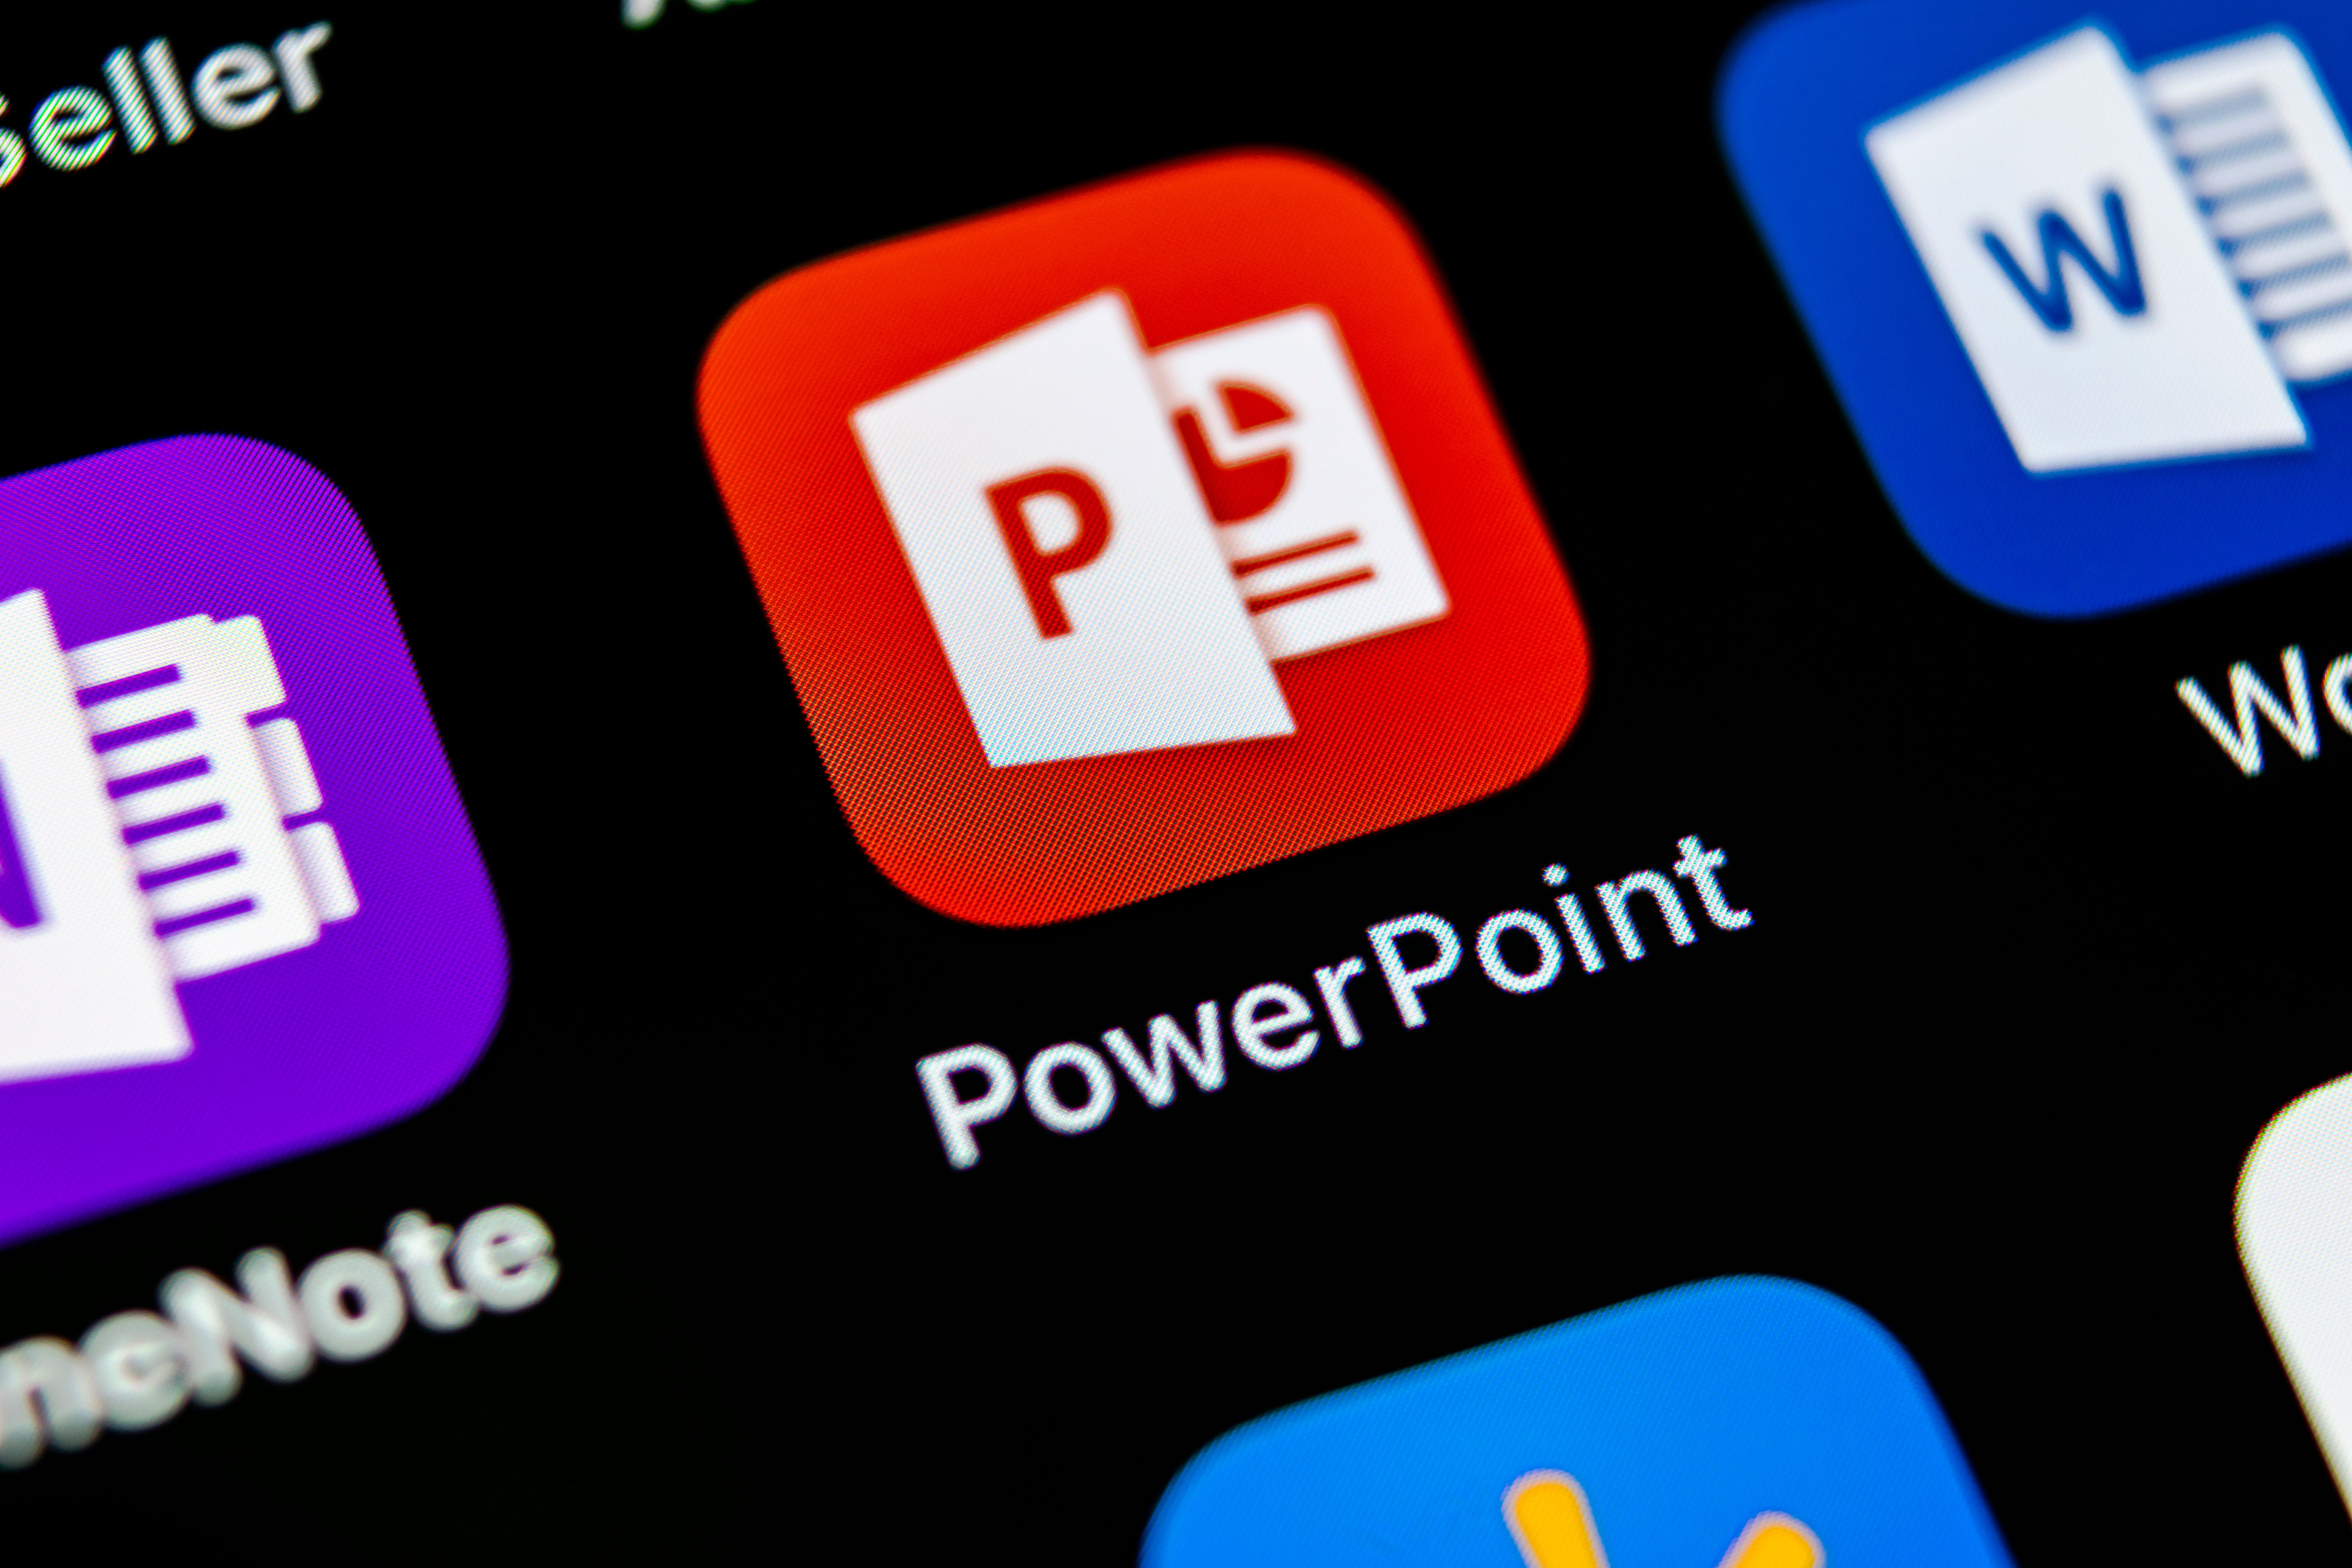 Powerpoint 2016: Basis (level 1)